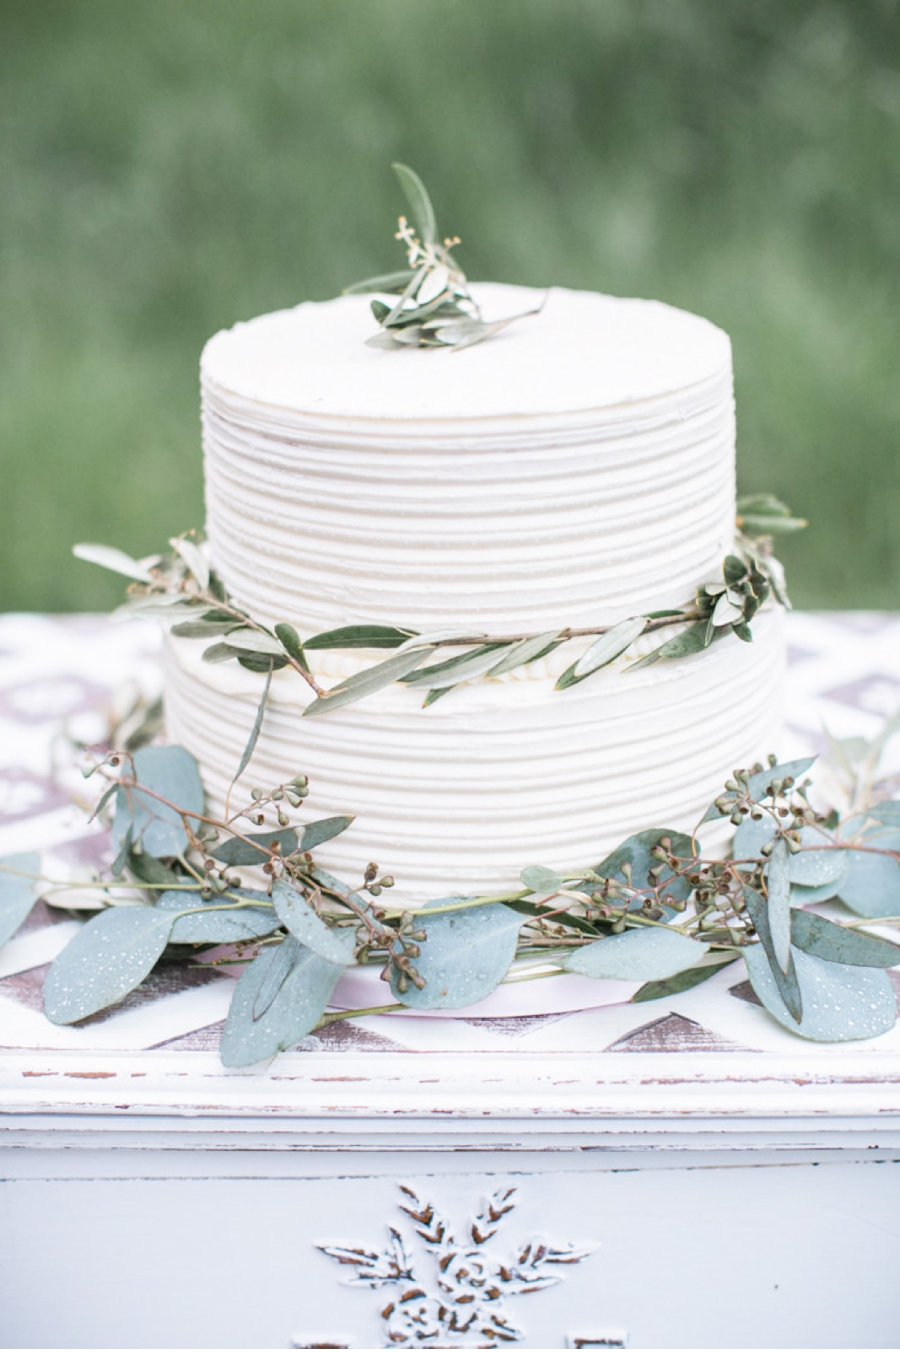 Wedding-Cake-with-Details